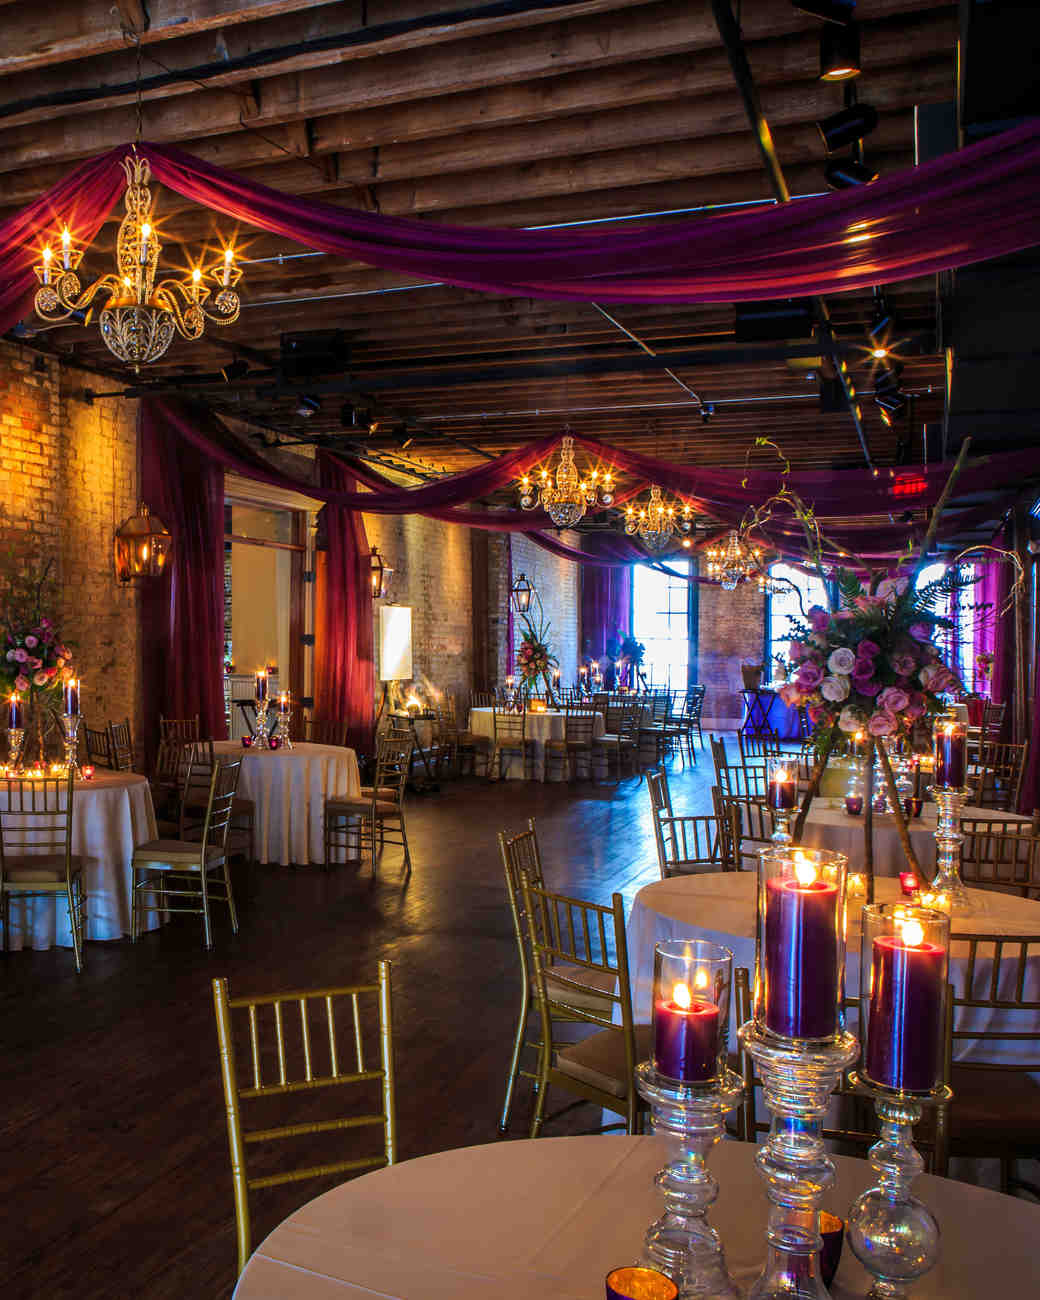 Small Wedding Venues In New Orleans | Restored Warehouses Where You Can Tie The Knot Martha Stewart Weddings